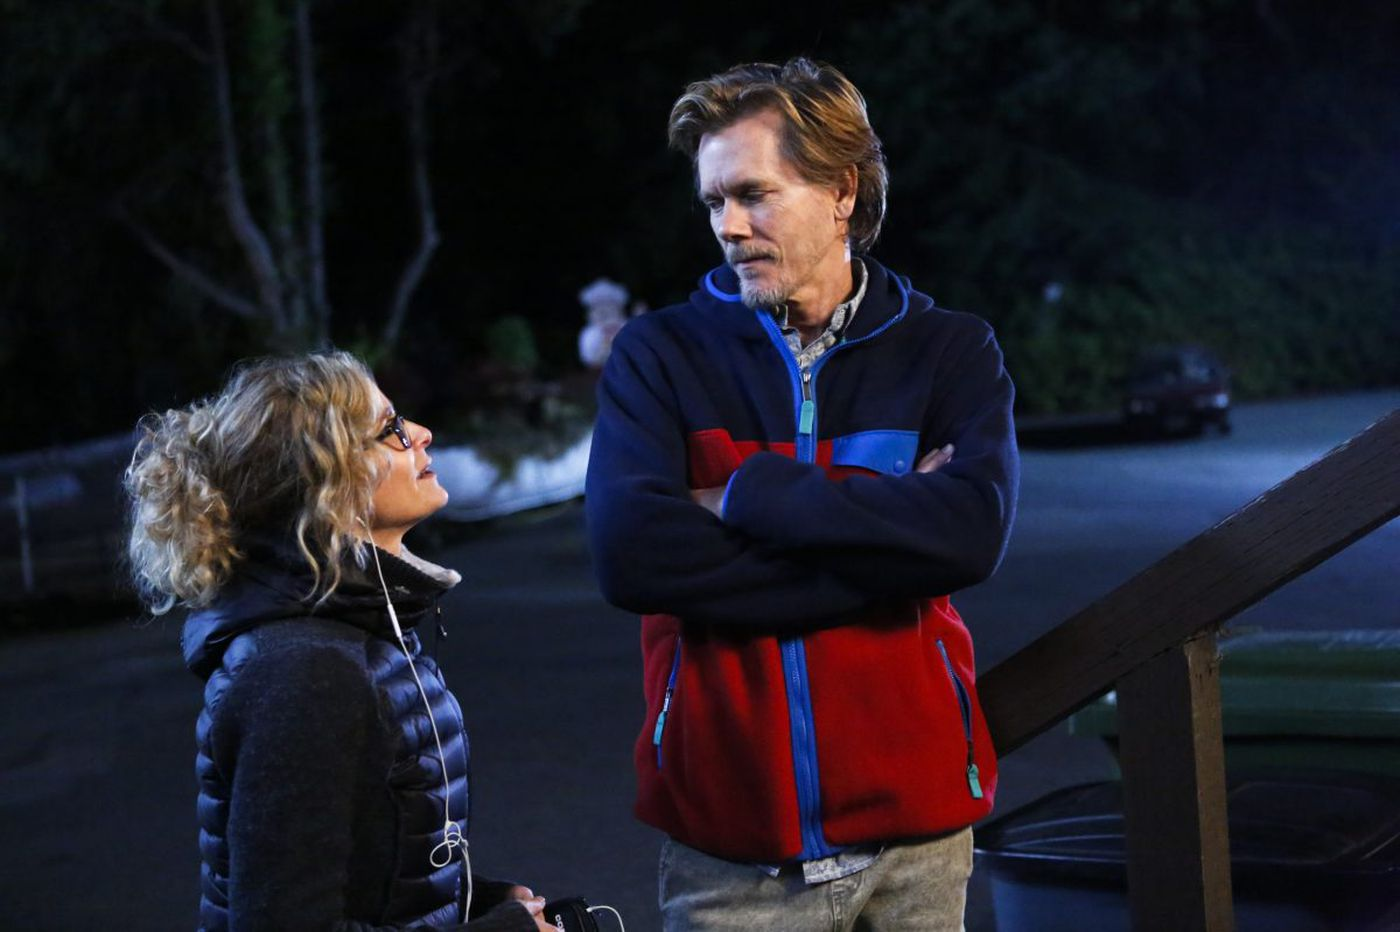 Kyra Sedgwick directs husband Kevin Bacon and their daughter in new Lifetime flick